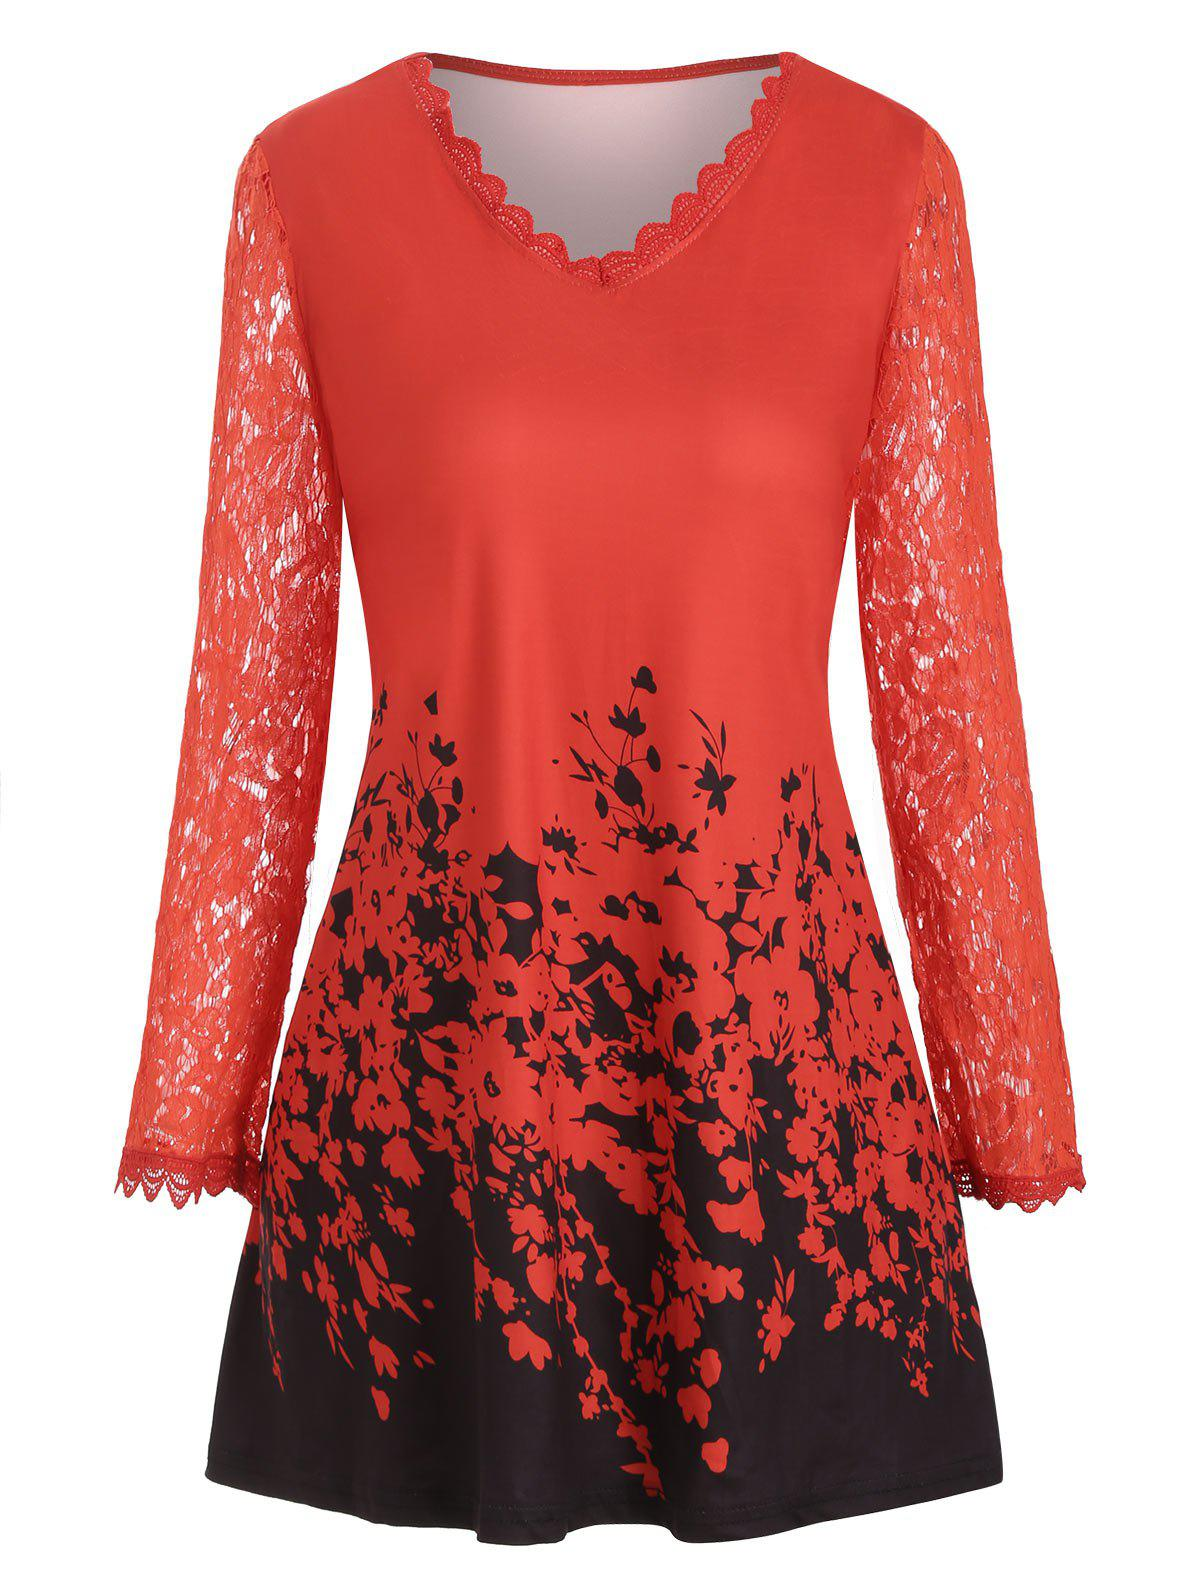 Plus Size Lace Sleeve Printed T Shirt - RED M